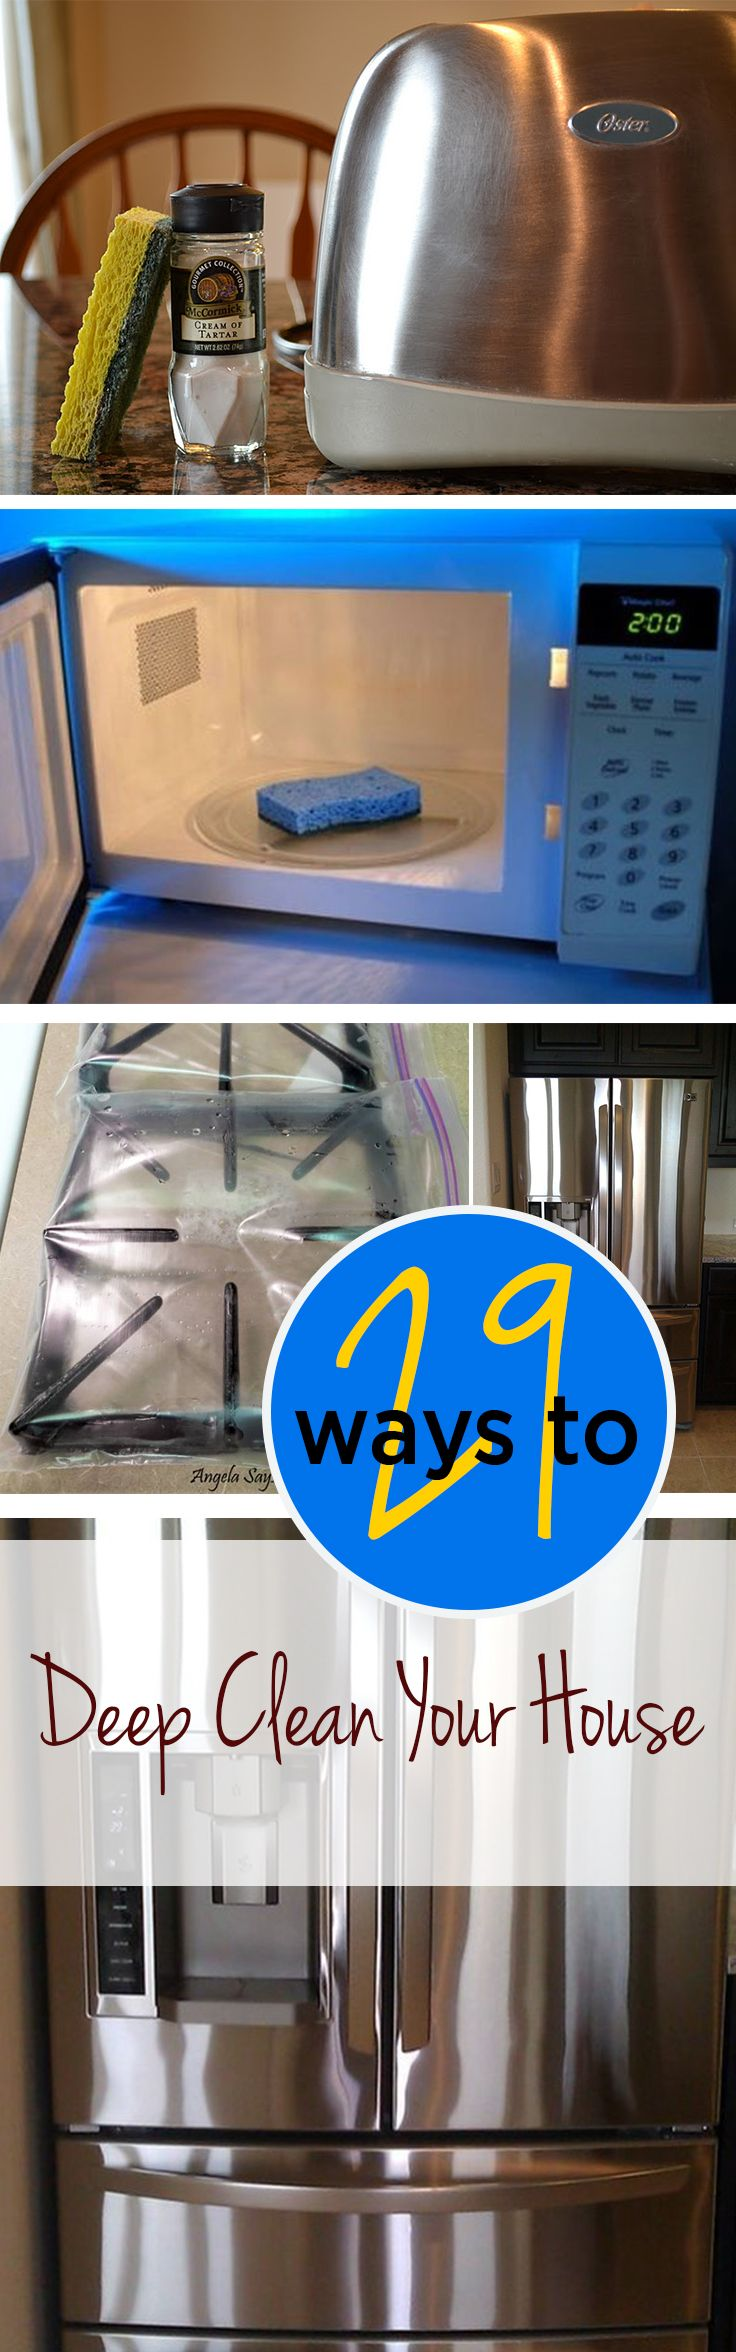 29 Ways to Deep Clean Your Home | House, Organizing and Household